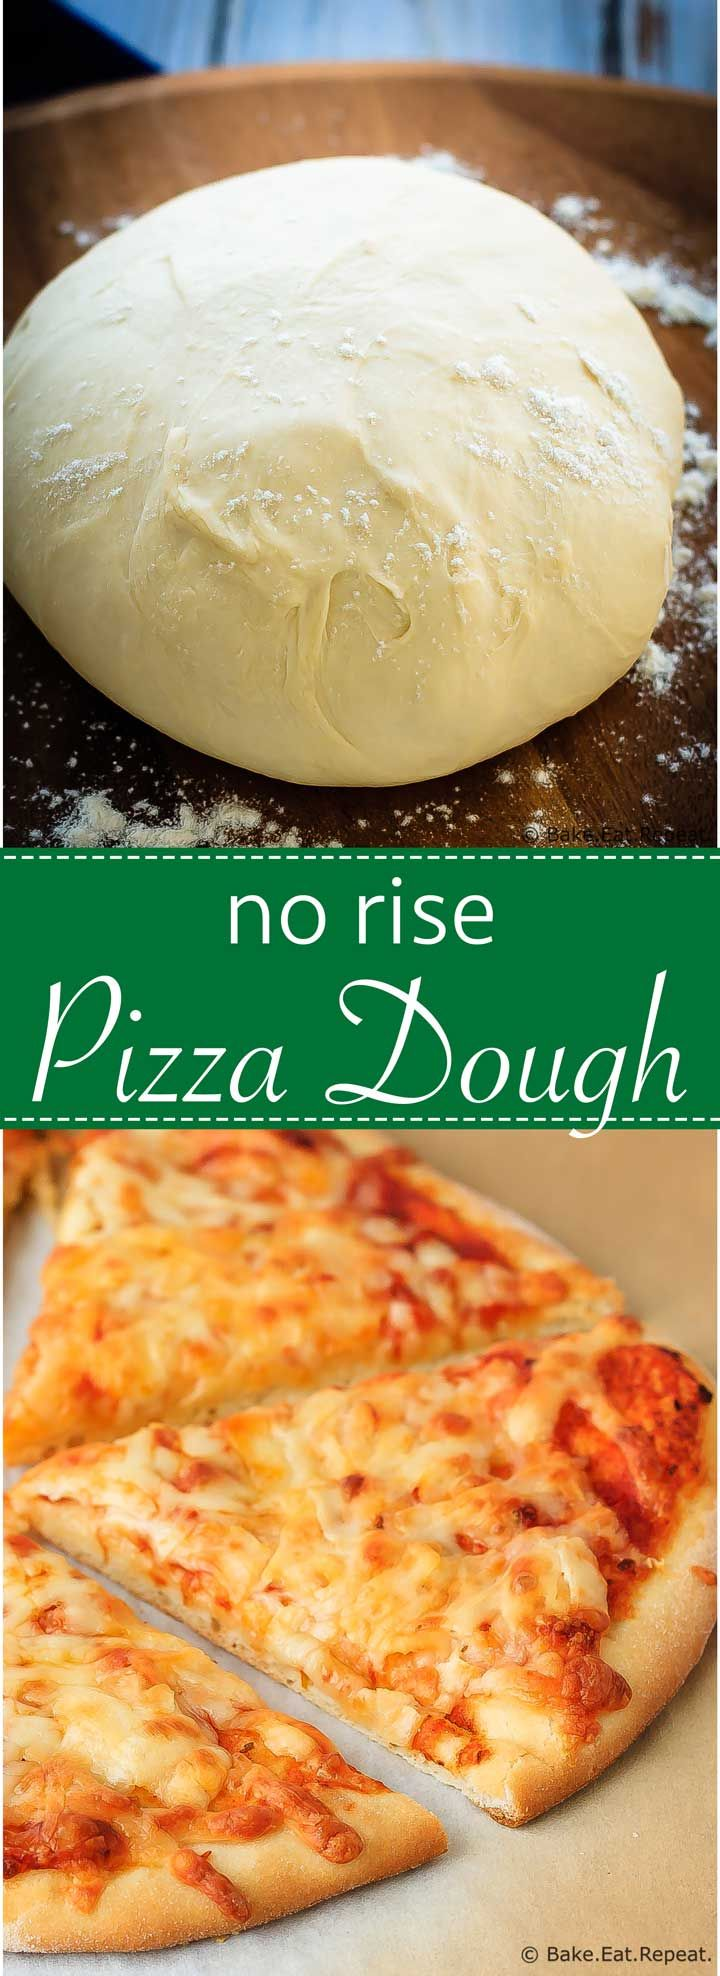 making pizza dough quick. no rise pizza dough - fast and easy to make \u2013 scratch making quick